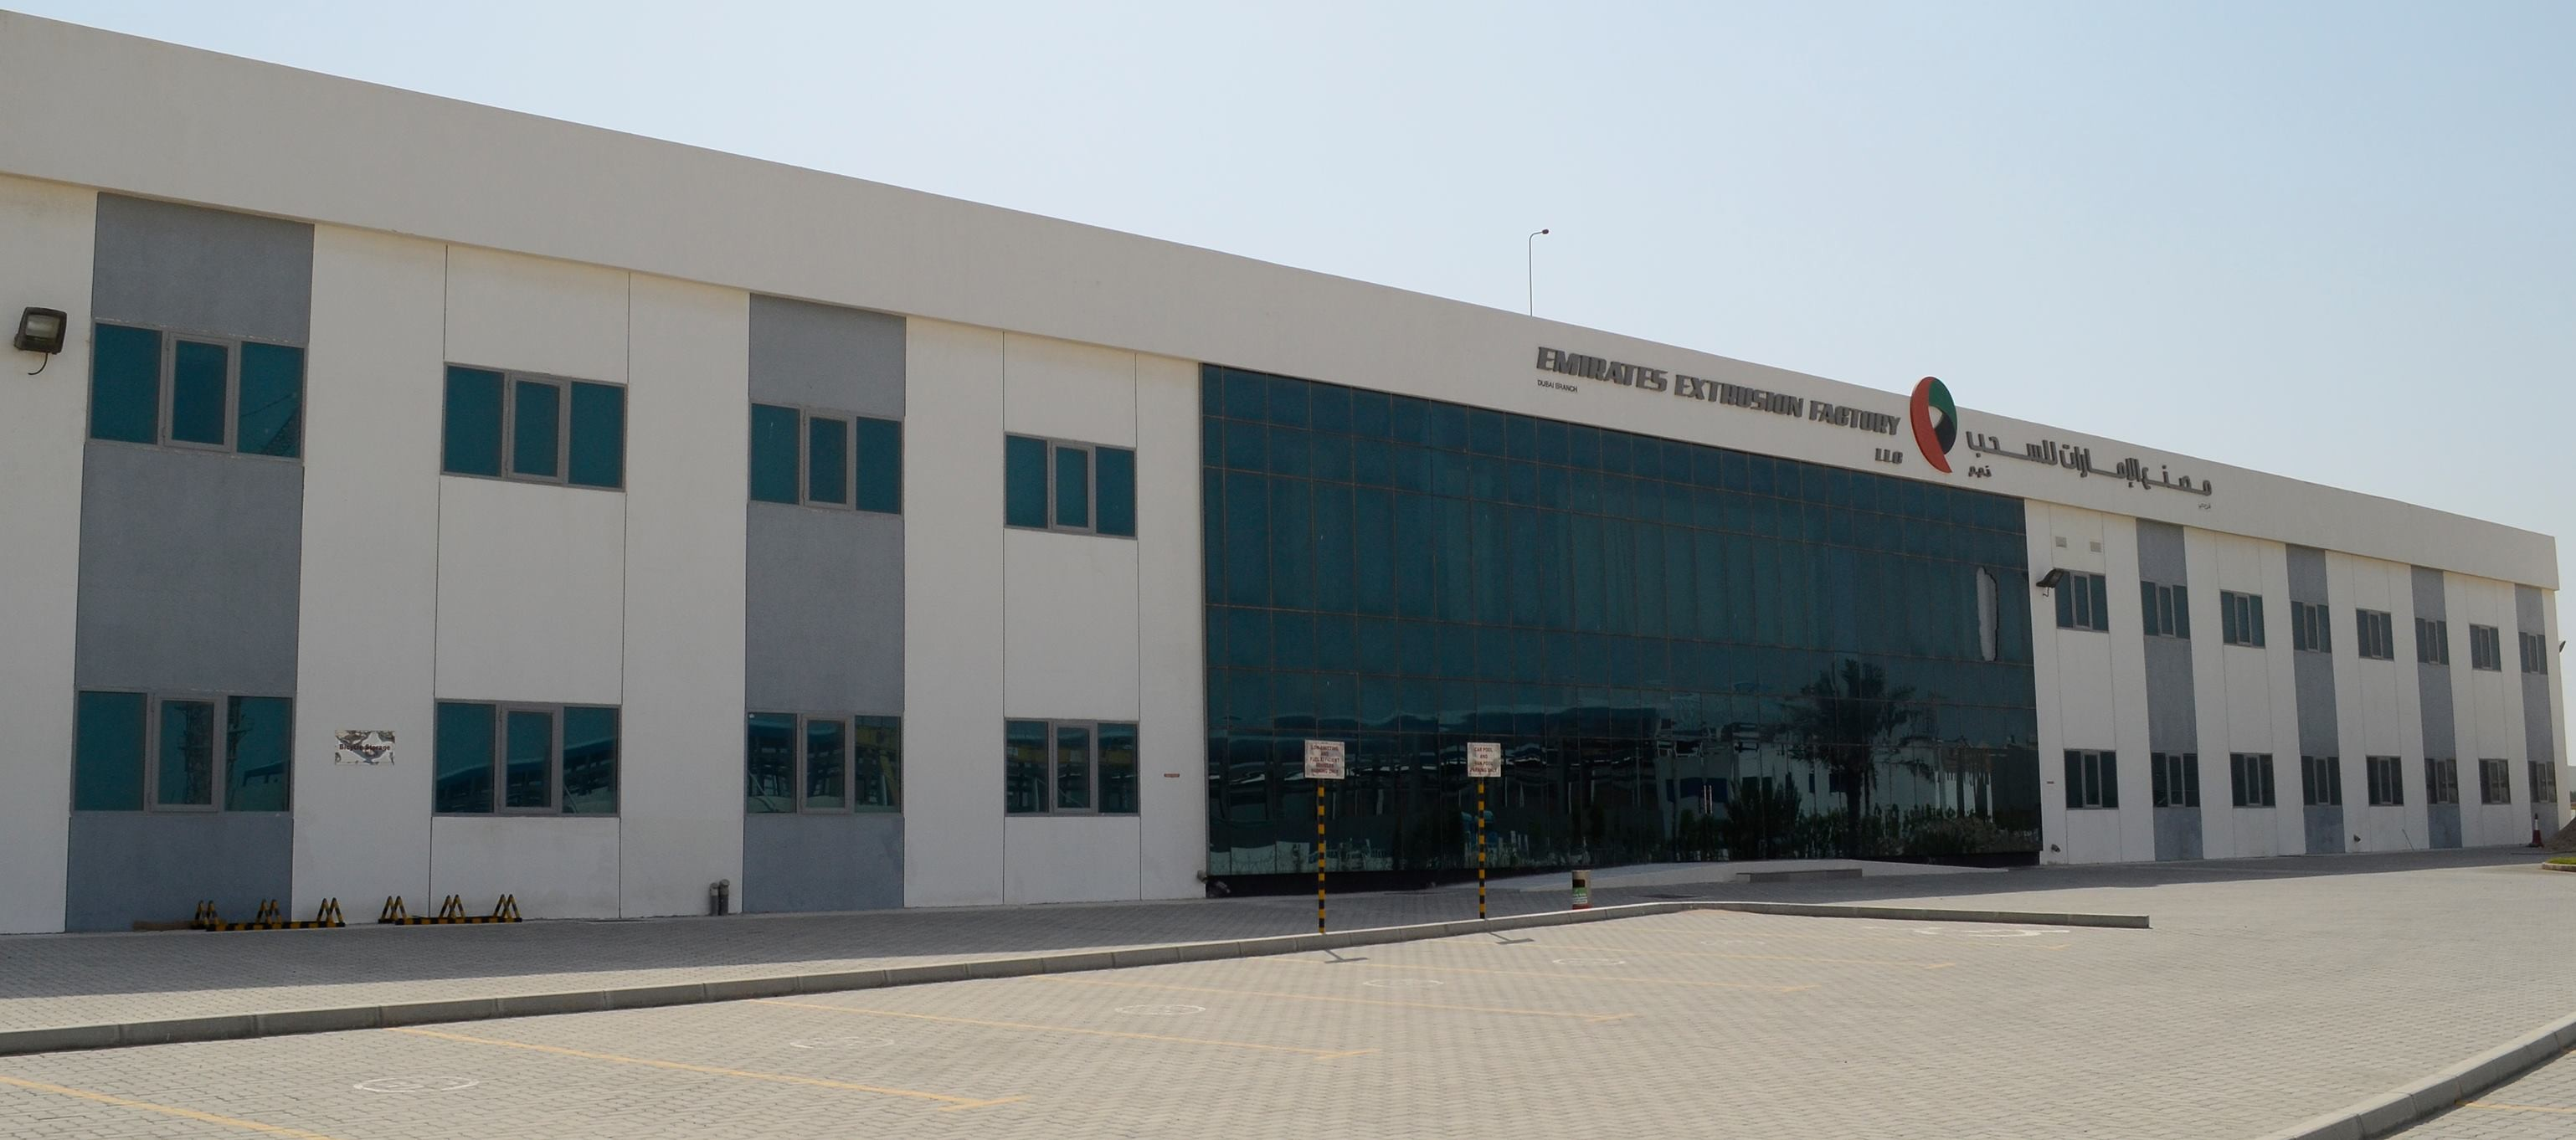 Emirates Extrusion Factory L L C  | LinkedIn